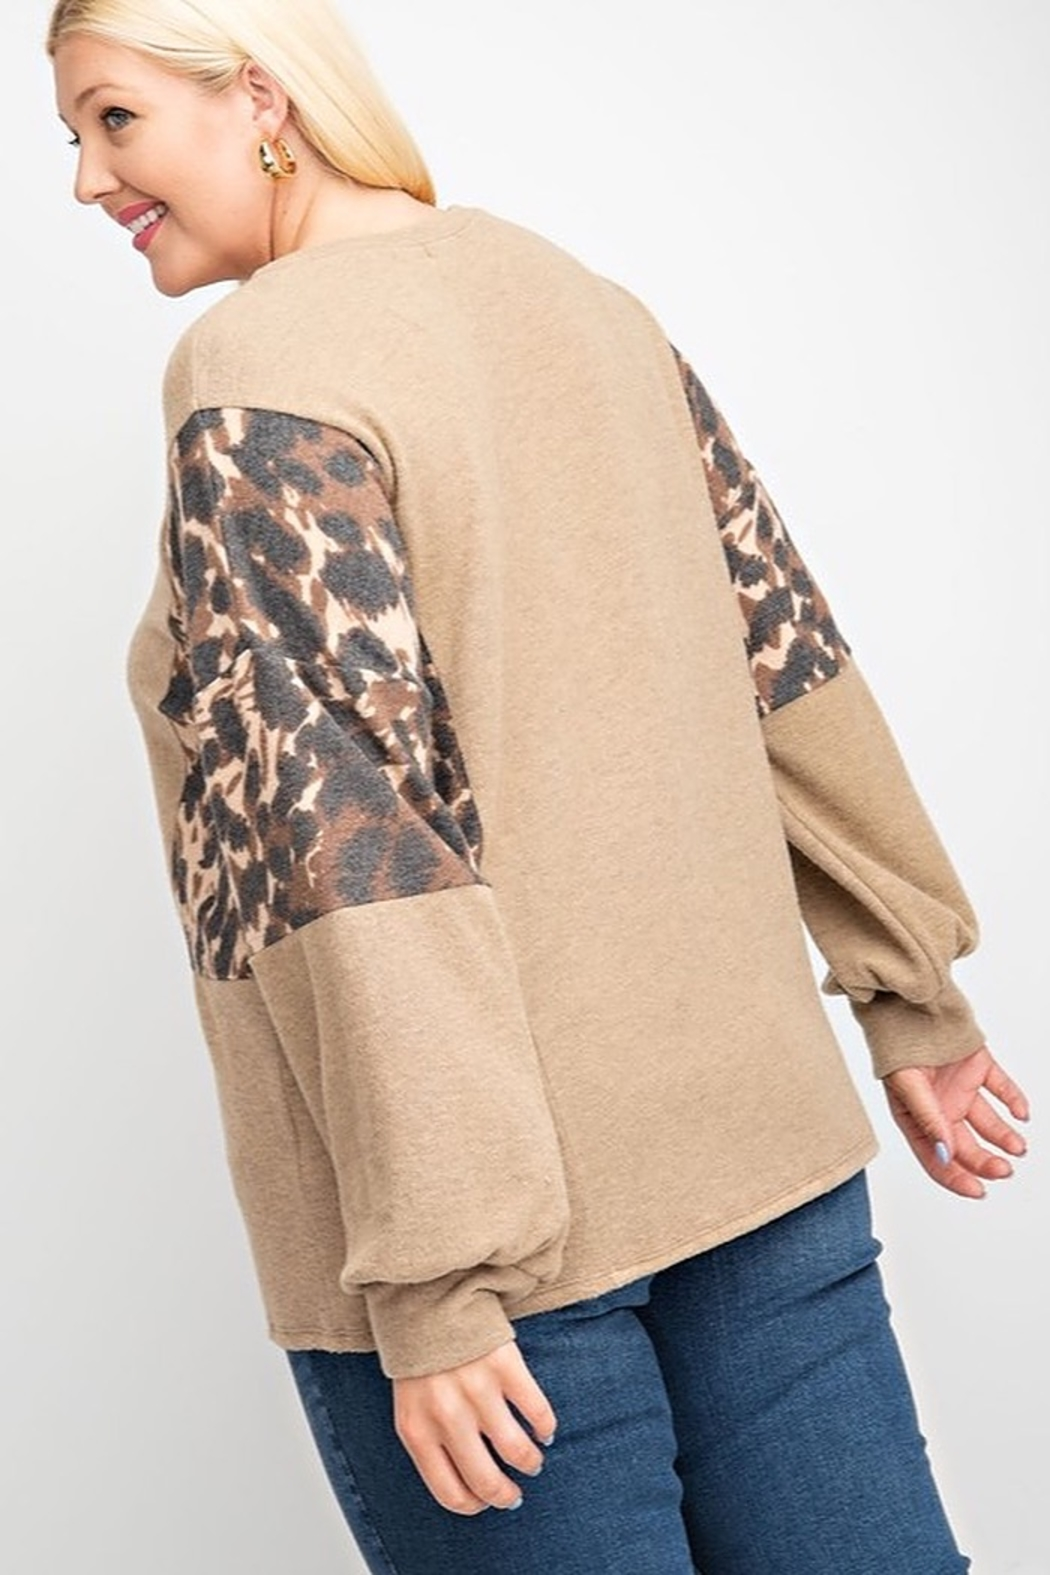 143 Story LEOPARD PRINT BRUSHED SOFT KNIT CONTRAST BUBBLE LONG SLEEVE TOP - Side Cropped Image